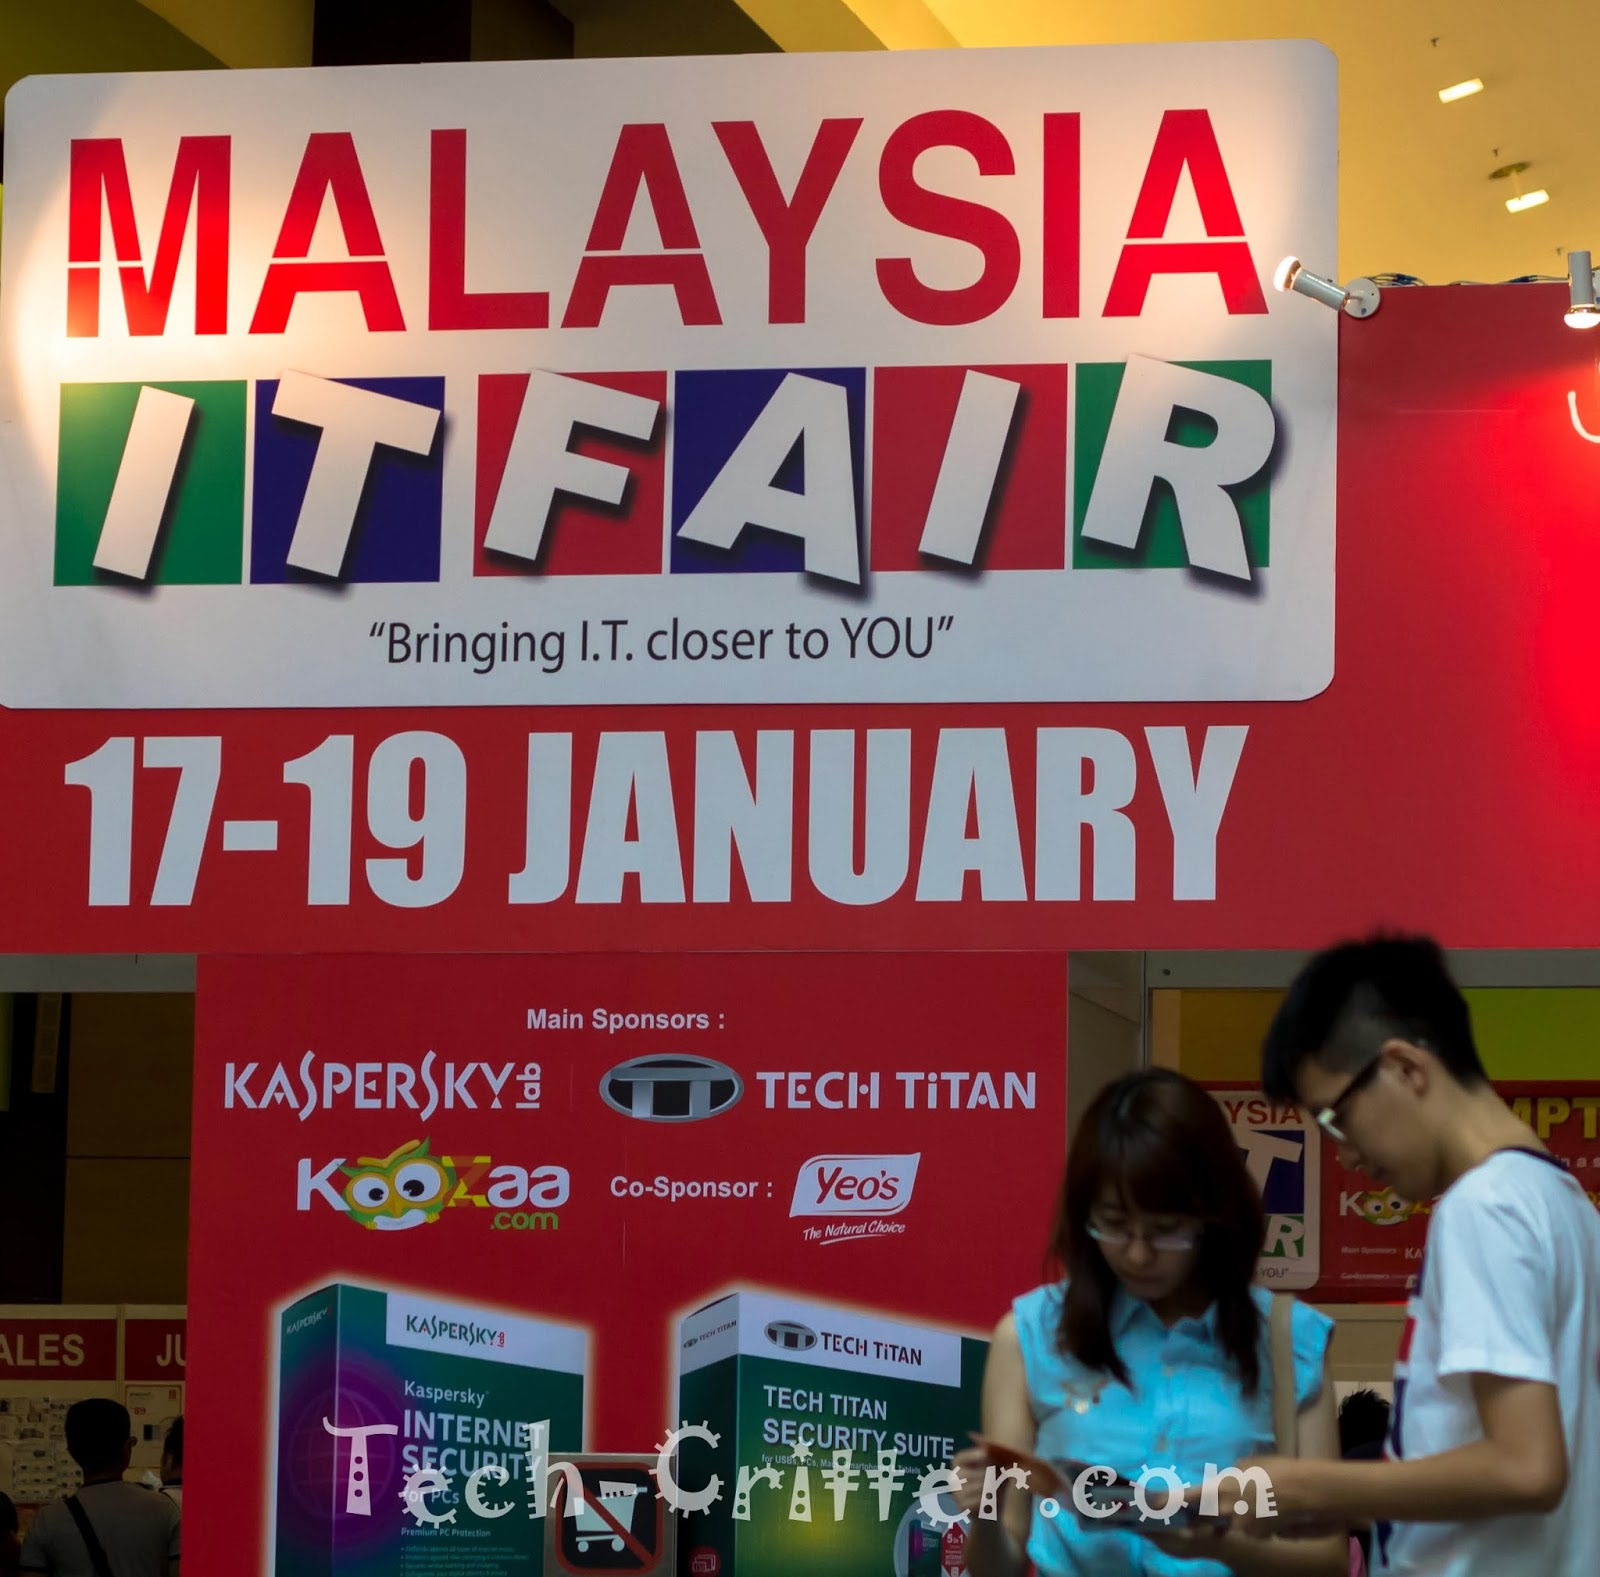 Coverage of the Malaysia IT Fair @ Mid Valley (17 - 19 Jan 2014) 227